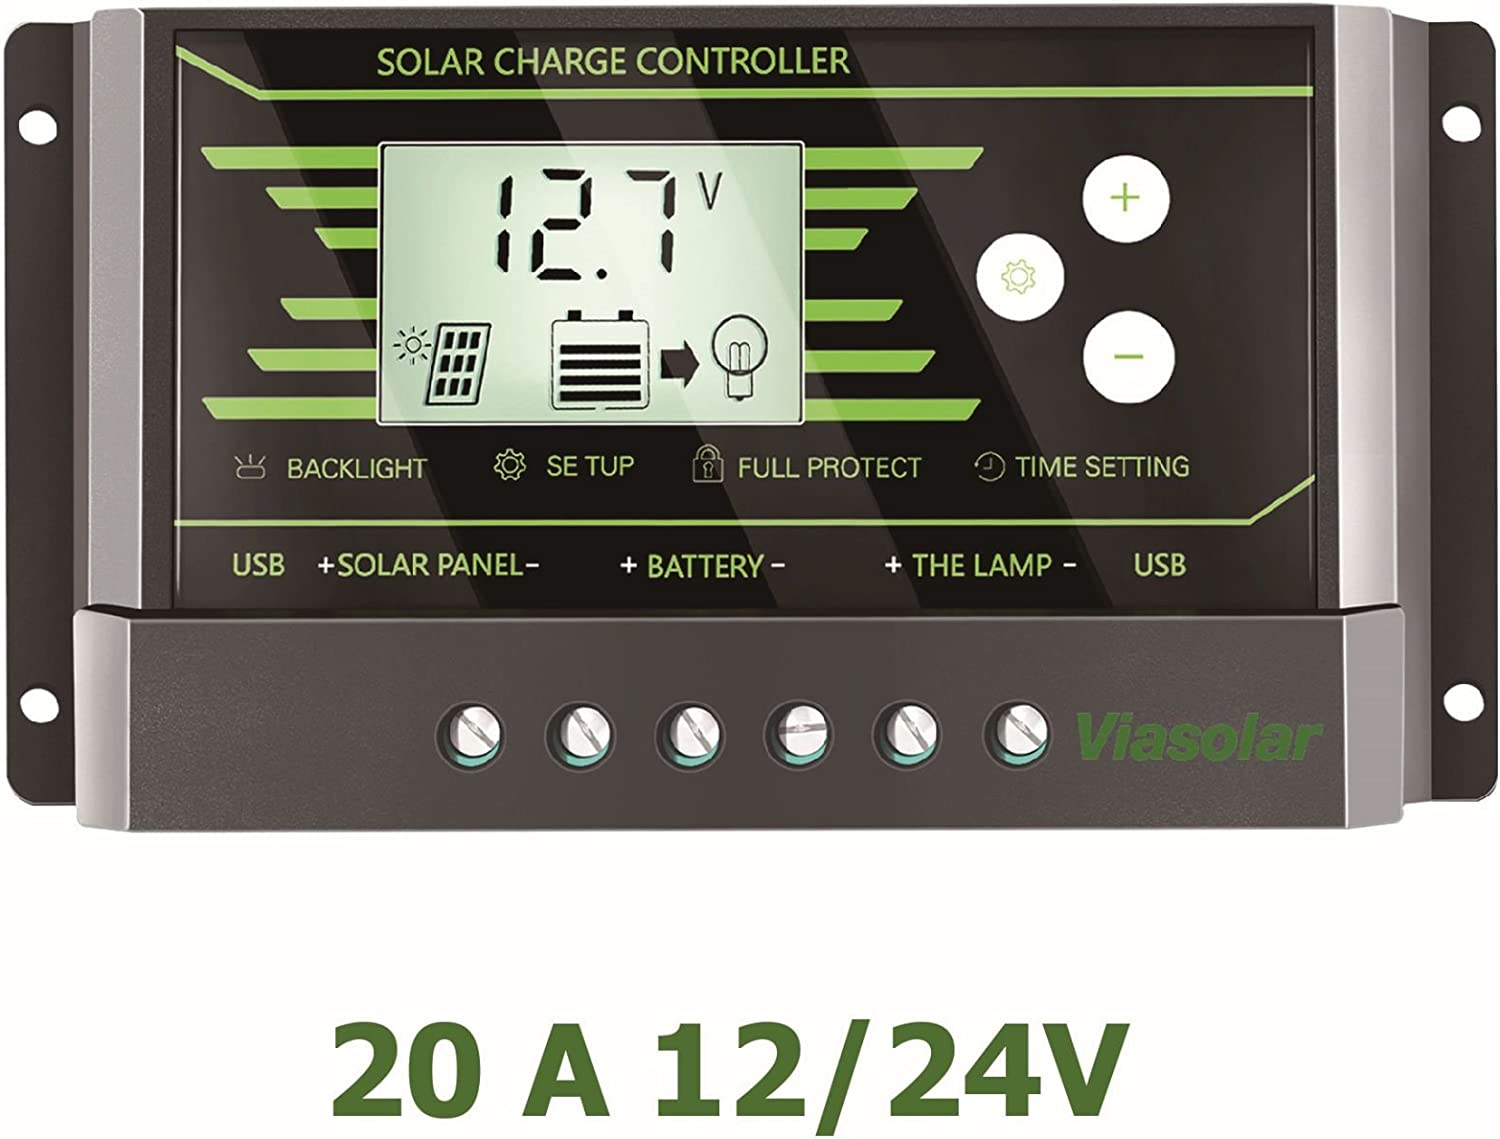 Regulador Solar de 20A 12V/24V con Display y 2 USB LCD VIASOLAR